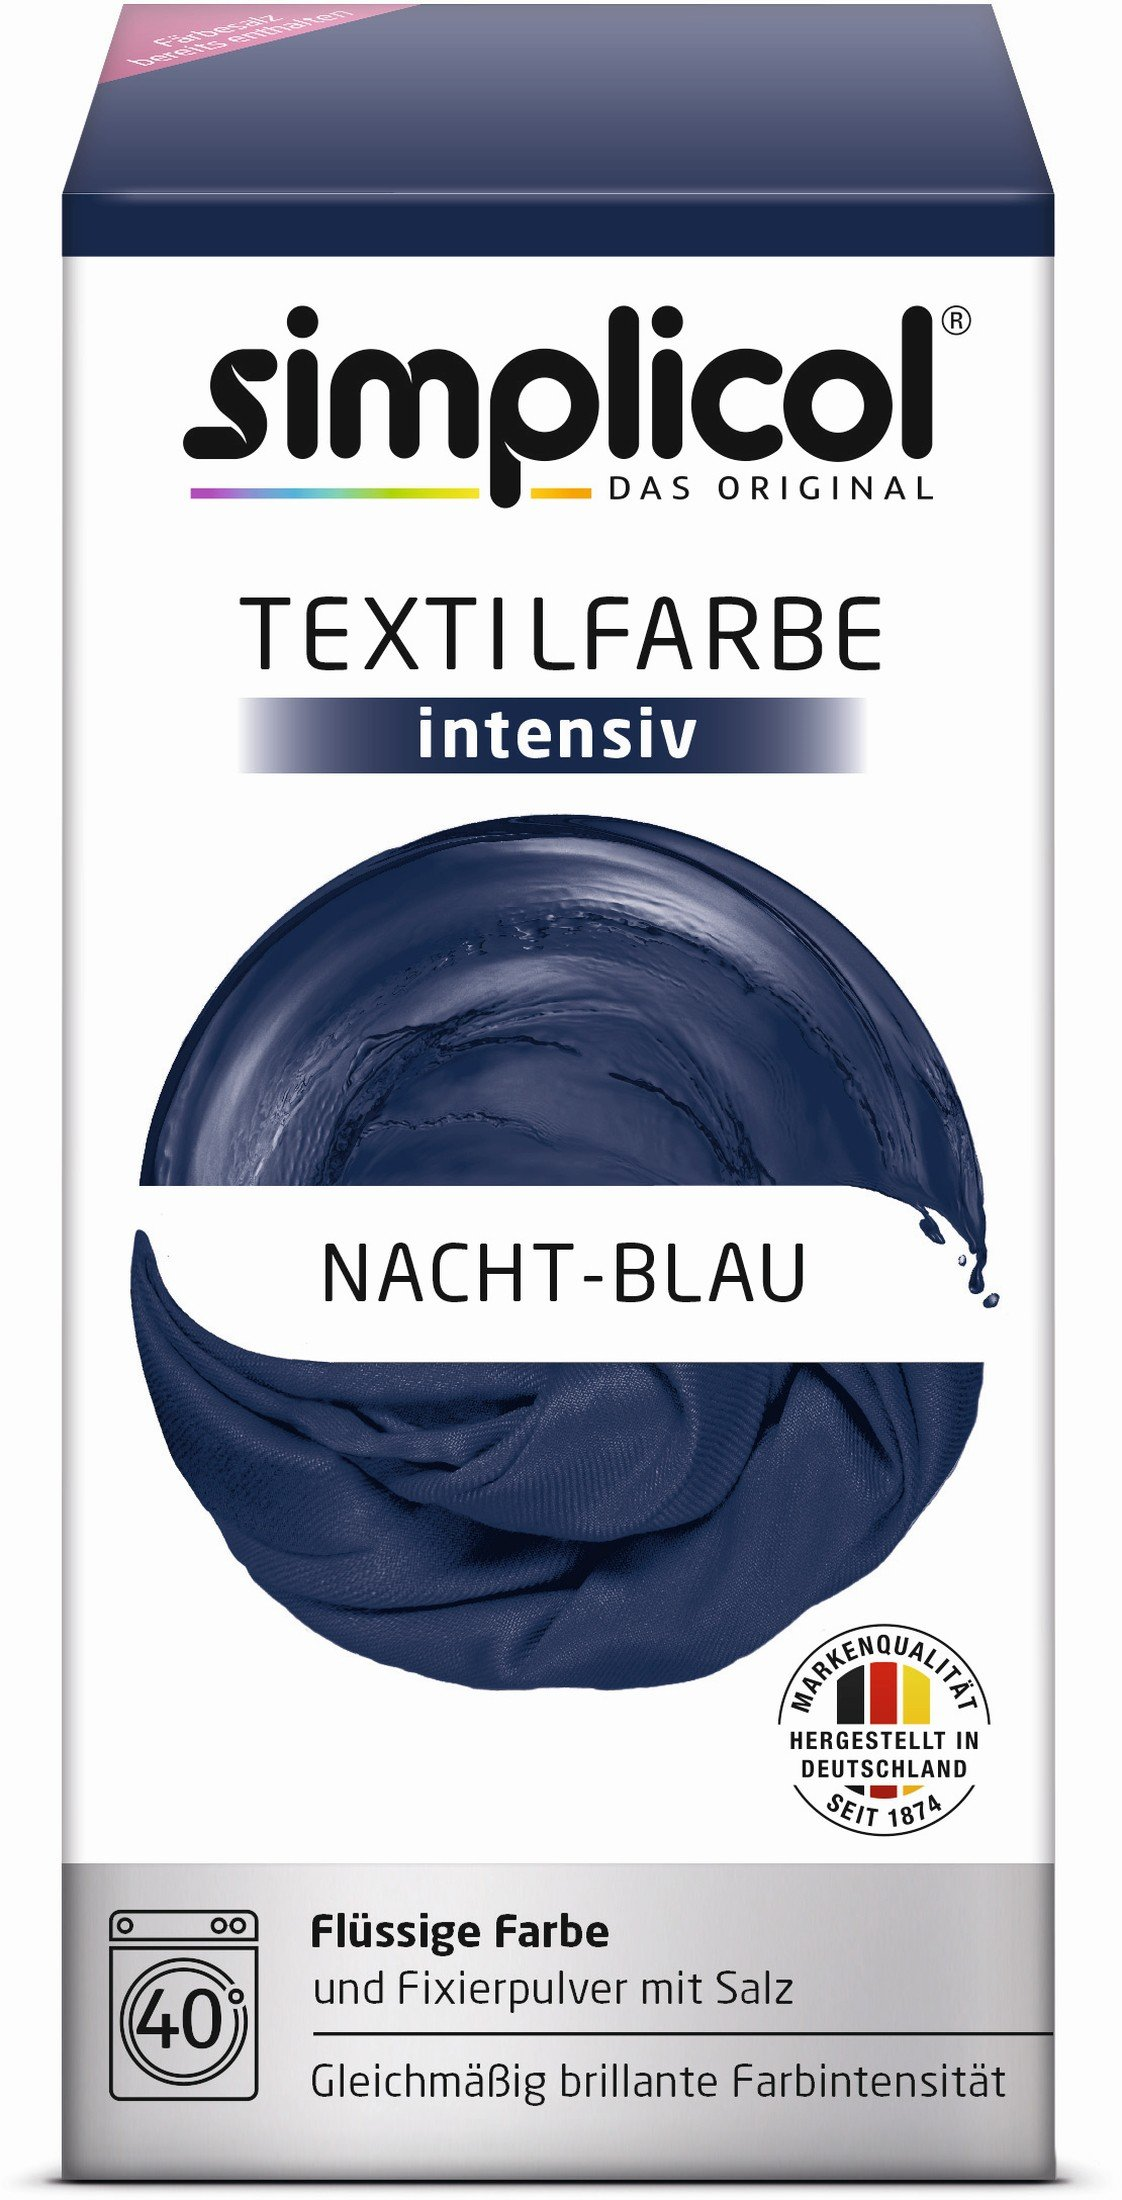 simplicol textilfarbe intensiv farbe nacht blau online kaufen. Black Bedroom Furniture Sets. Home Design Ideas